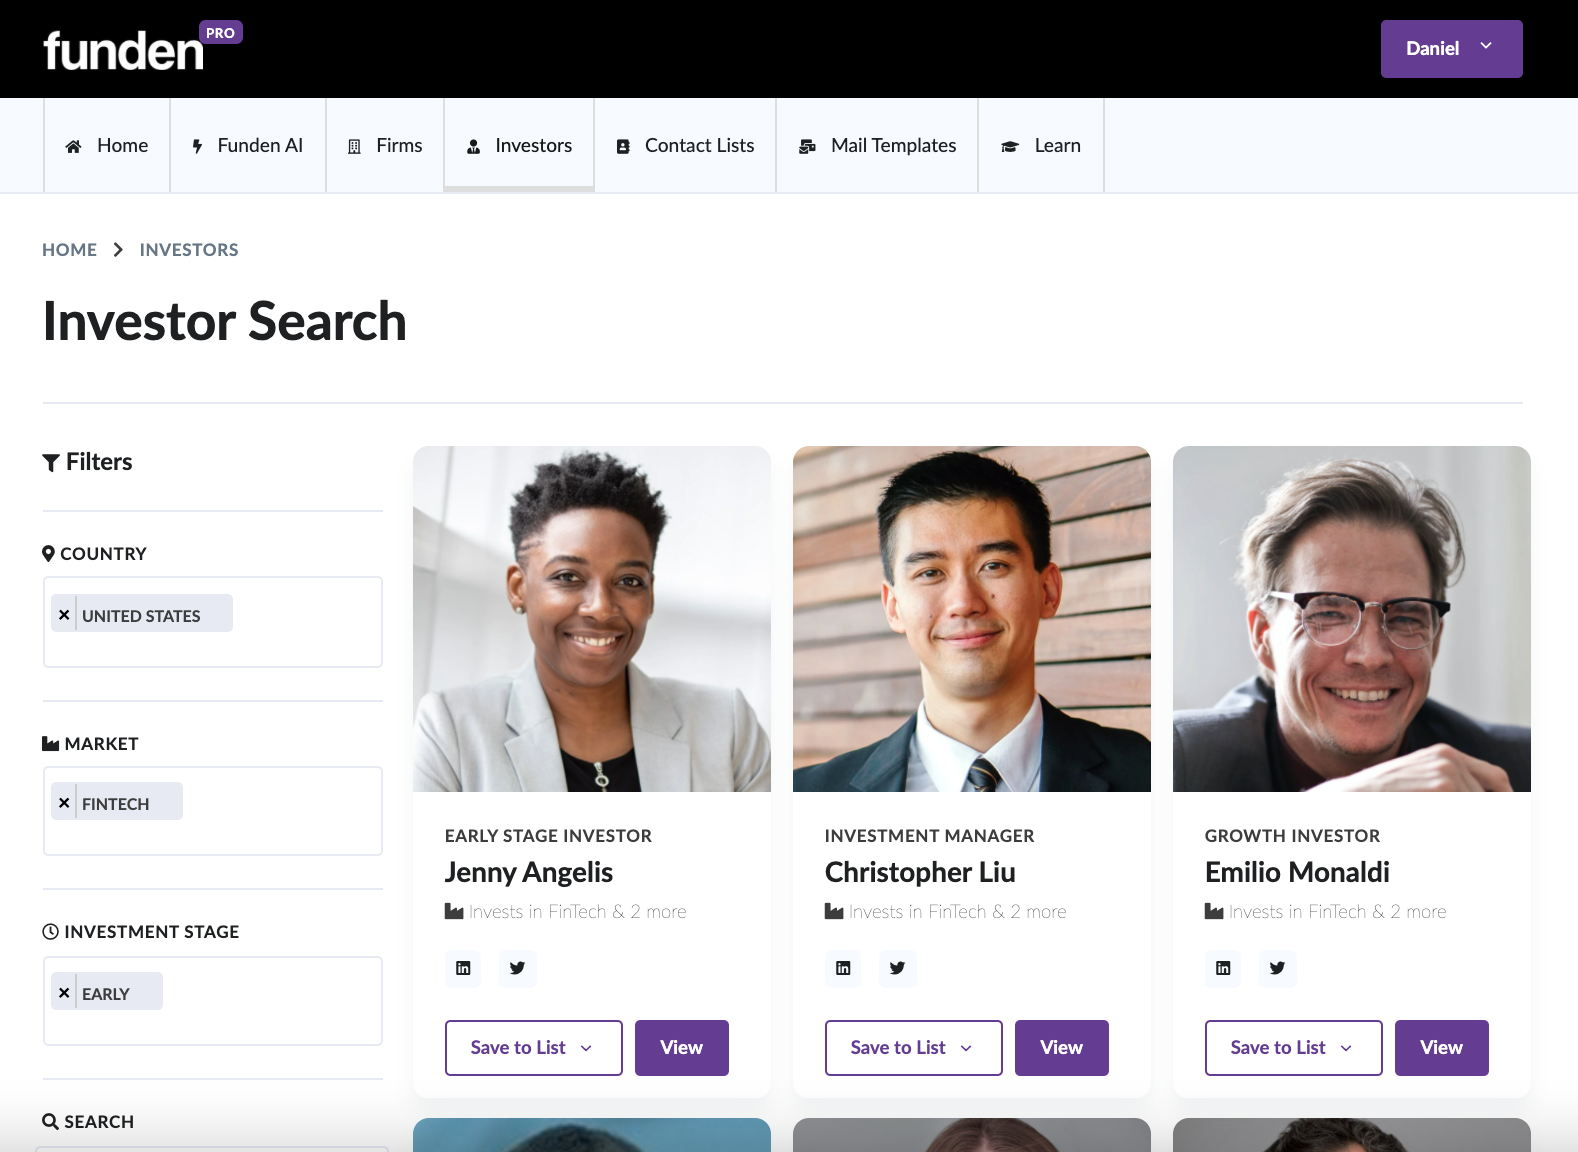 Funden app screenshot to find startup investors and vc firms directory database home